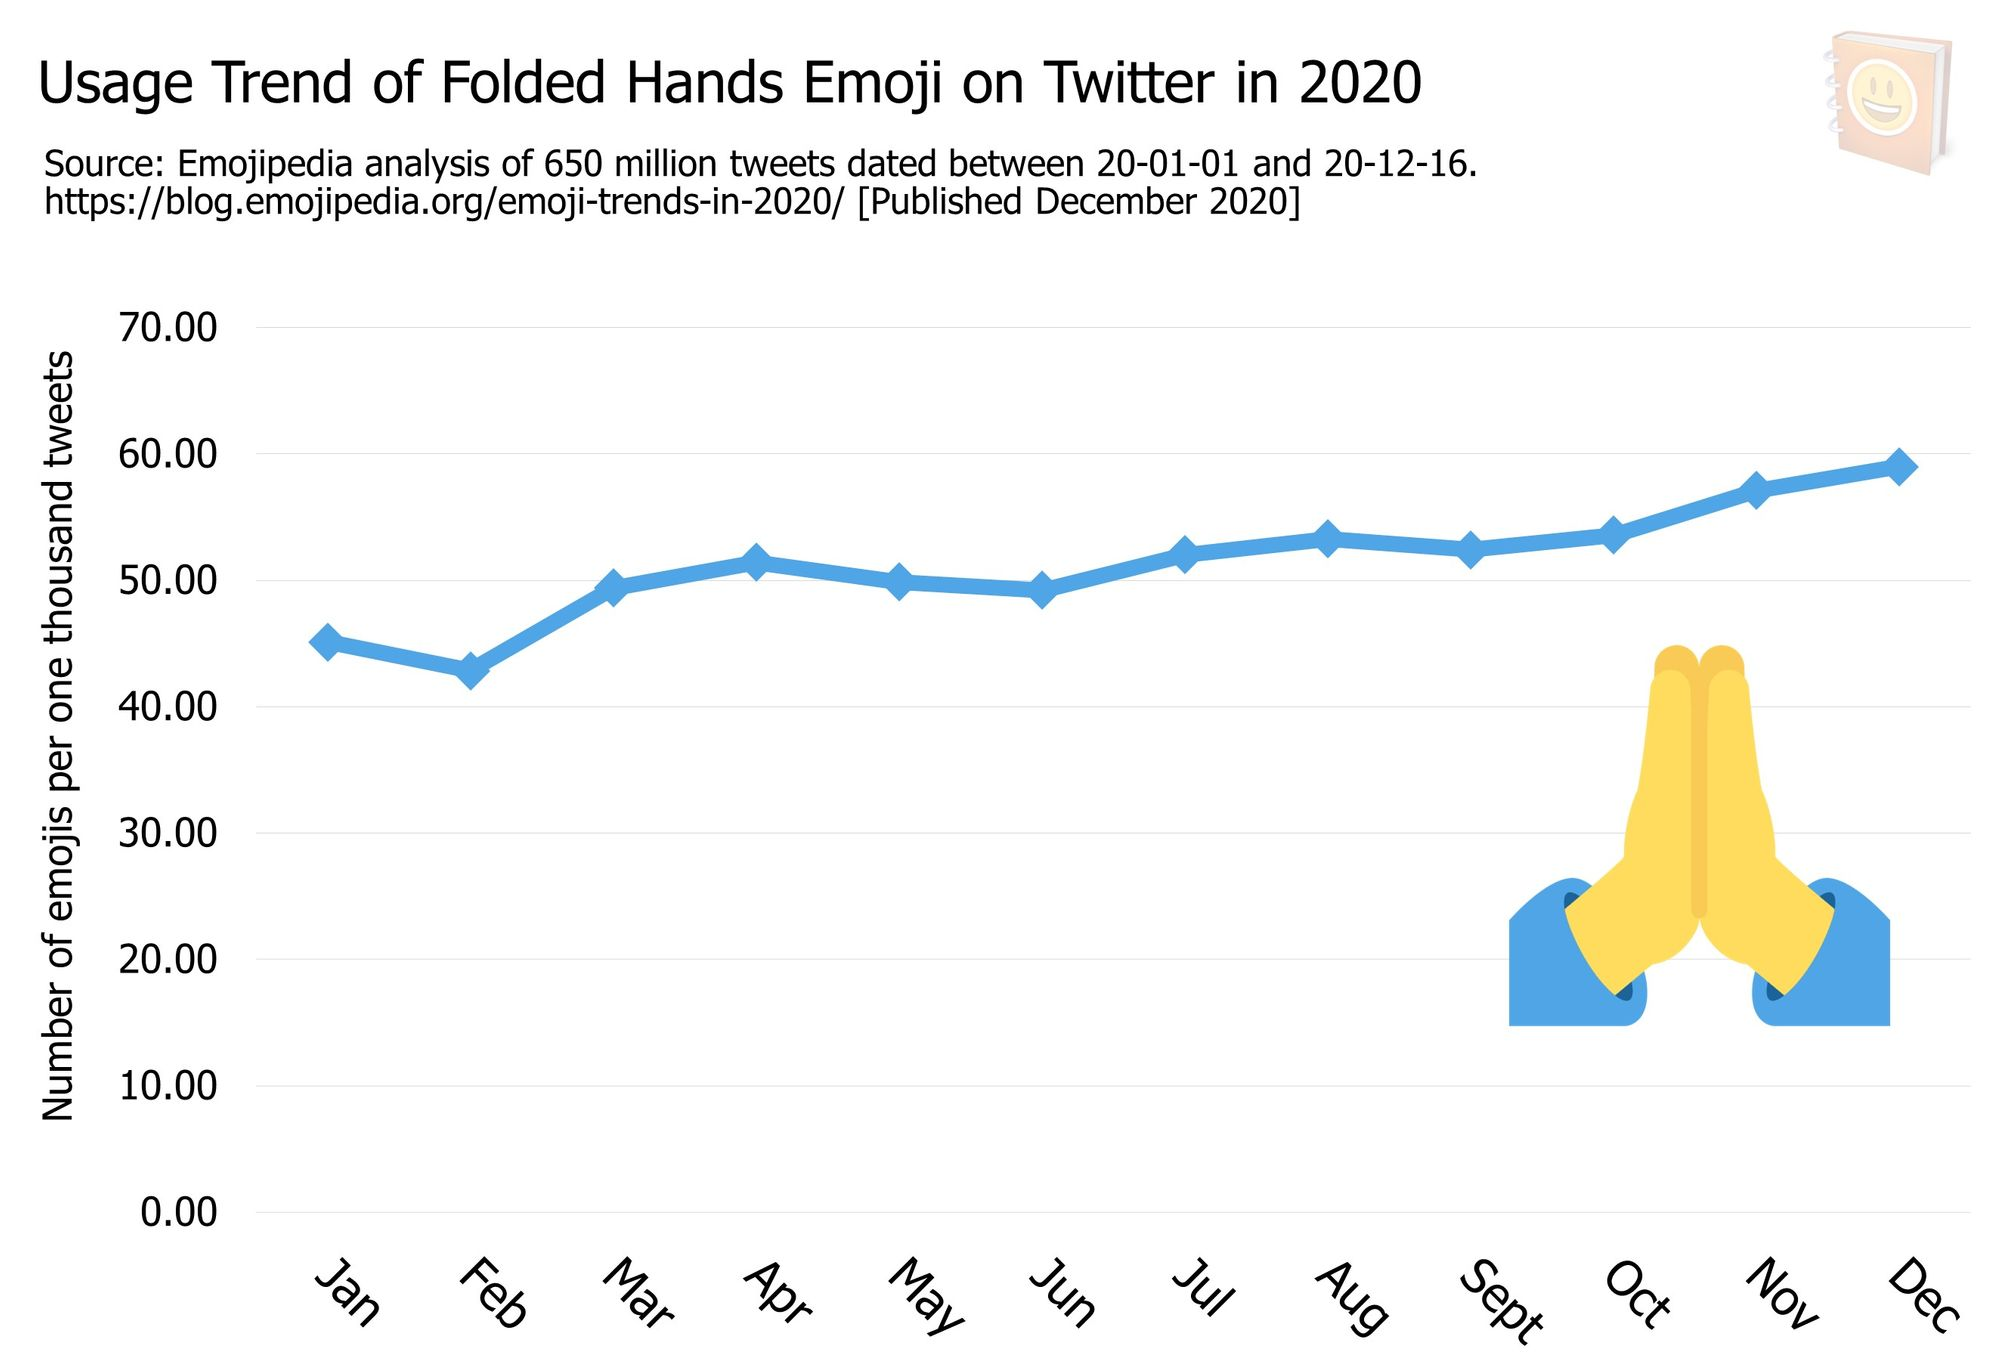 Emoji-Trends-In-2020---Usage-Trend-of-Folded-Hands-Emoji-on-Twitter-in-2020